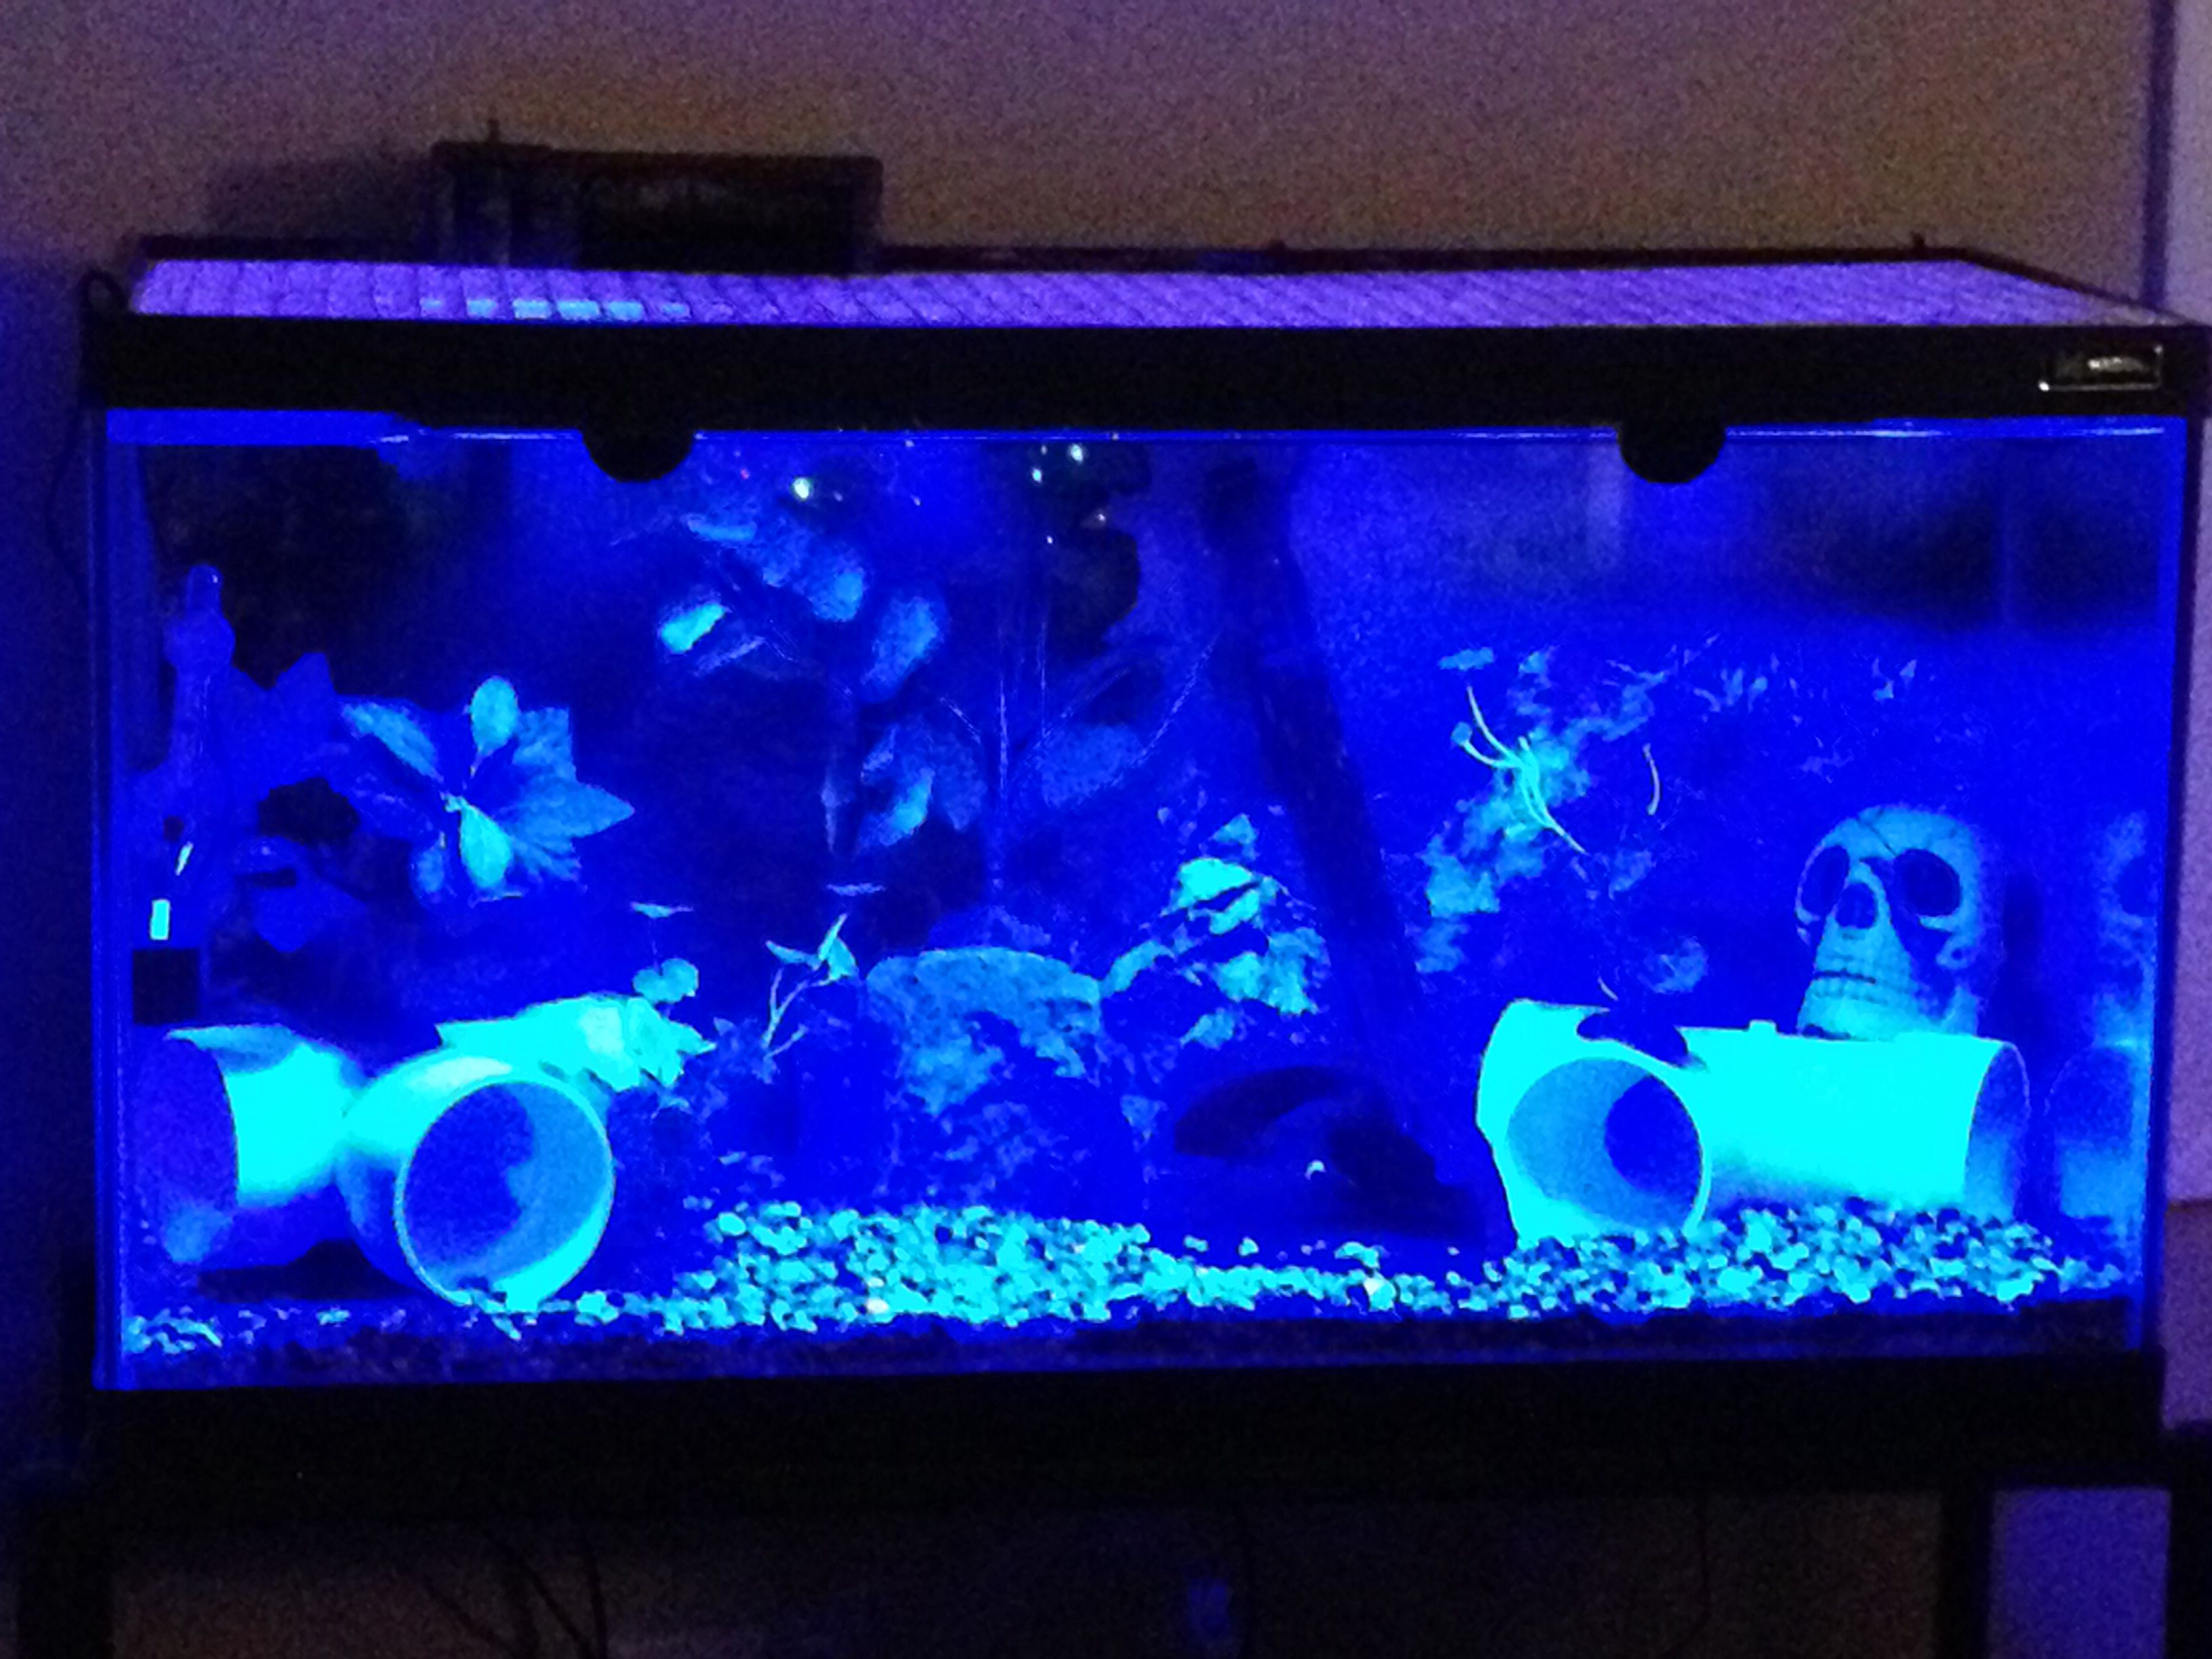 Fish tank night light - Aurora Cichlid Tank Breeding Quad Night Light